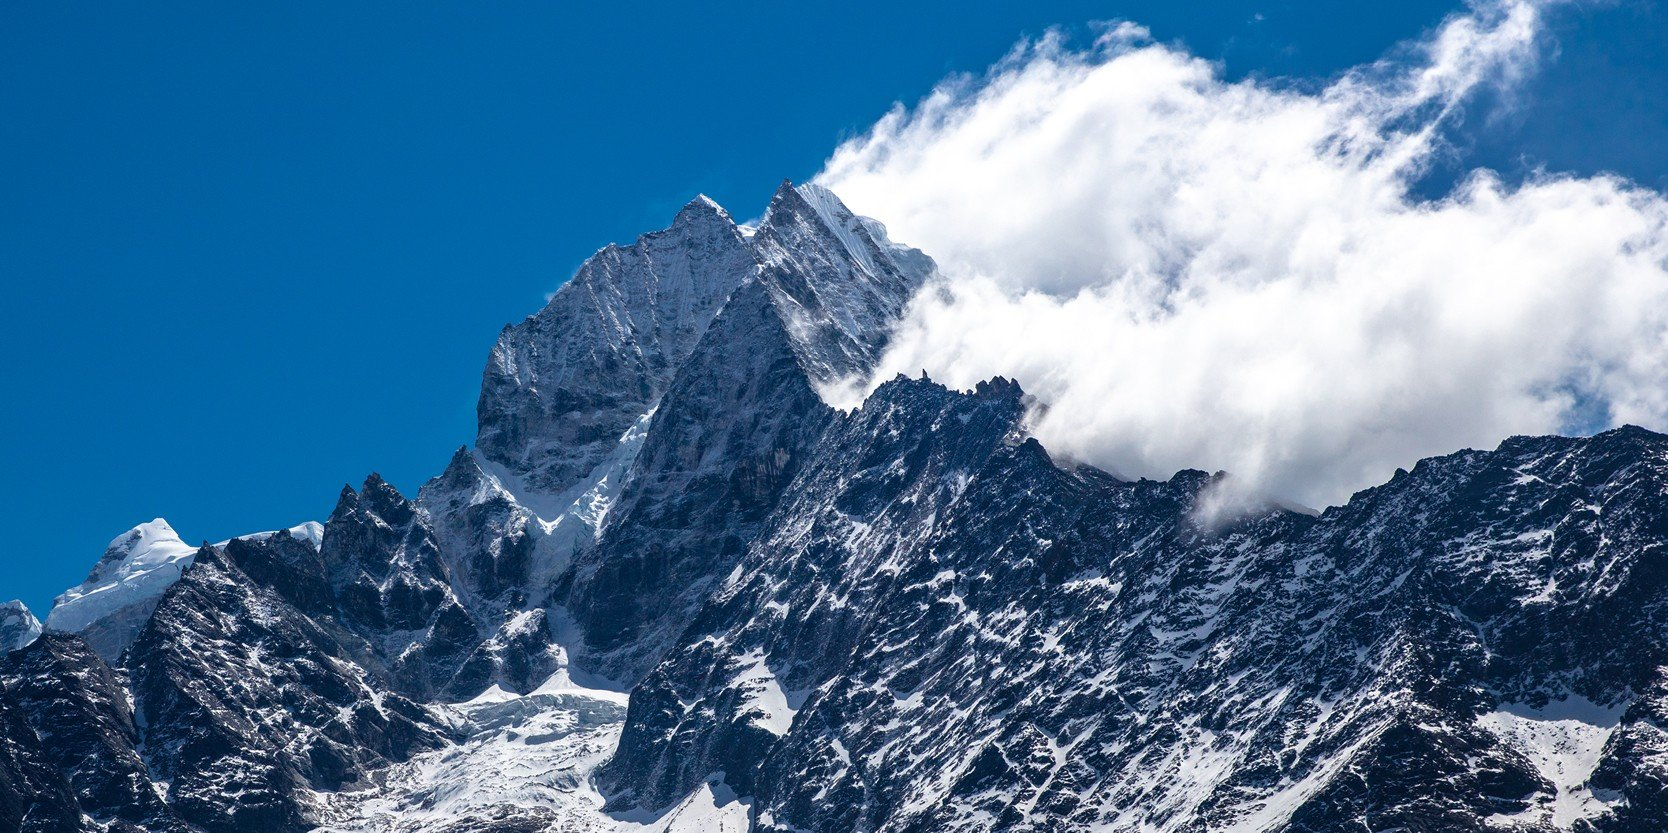 10 Issues to Consider During Your EBC Trek